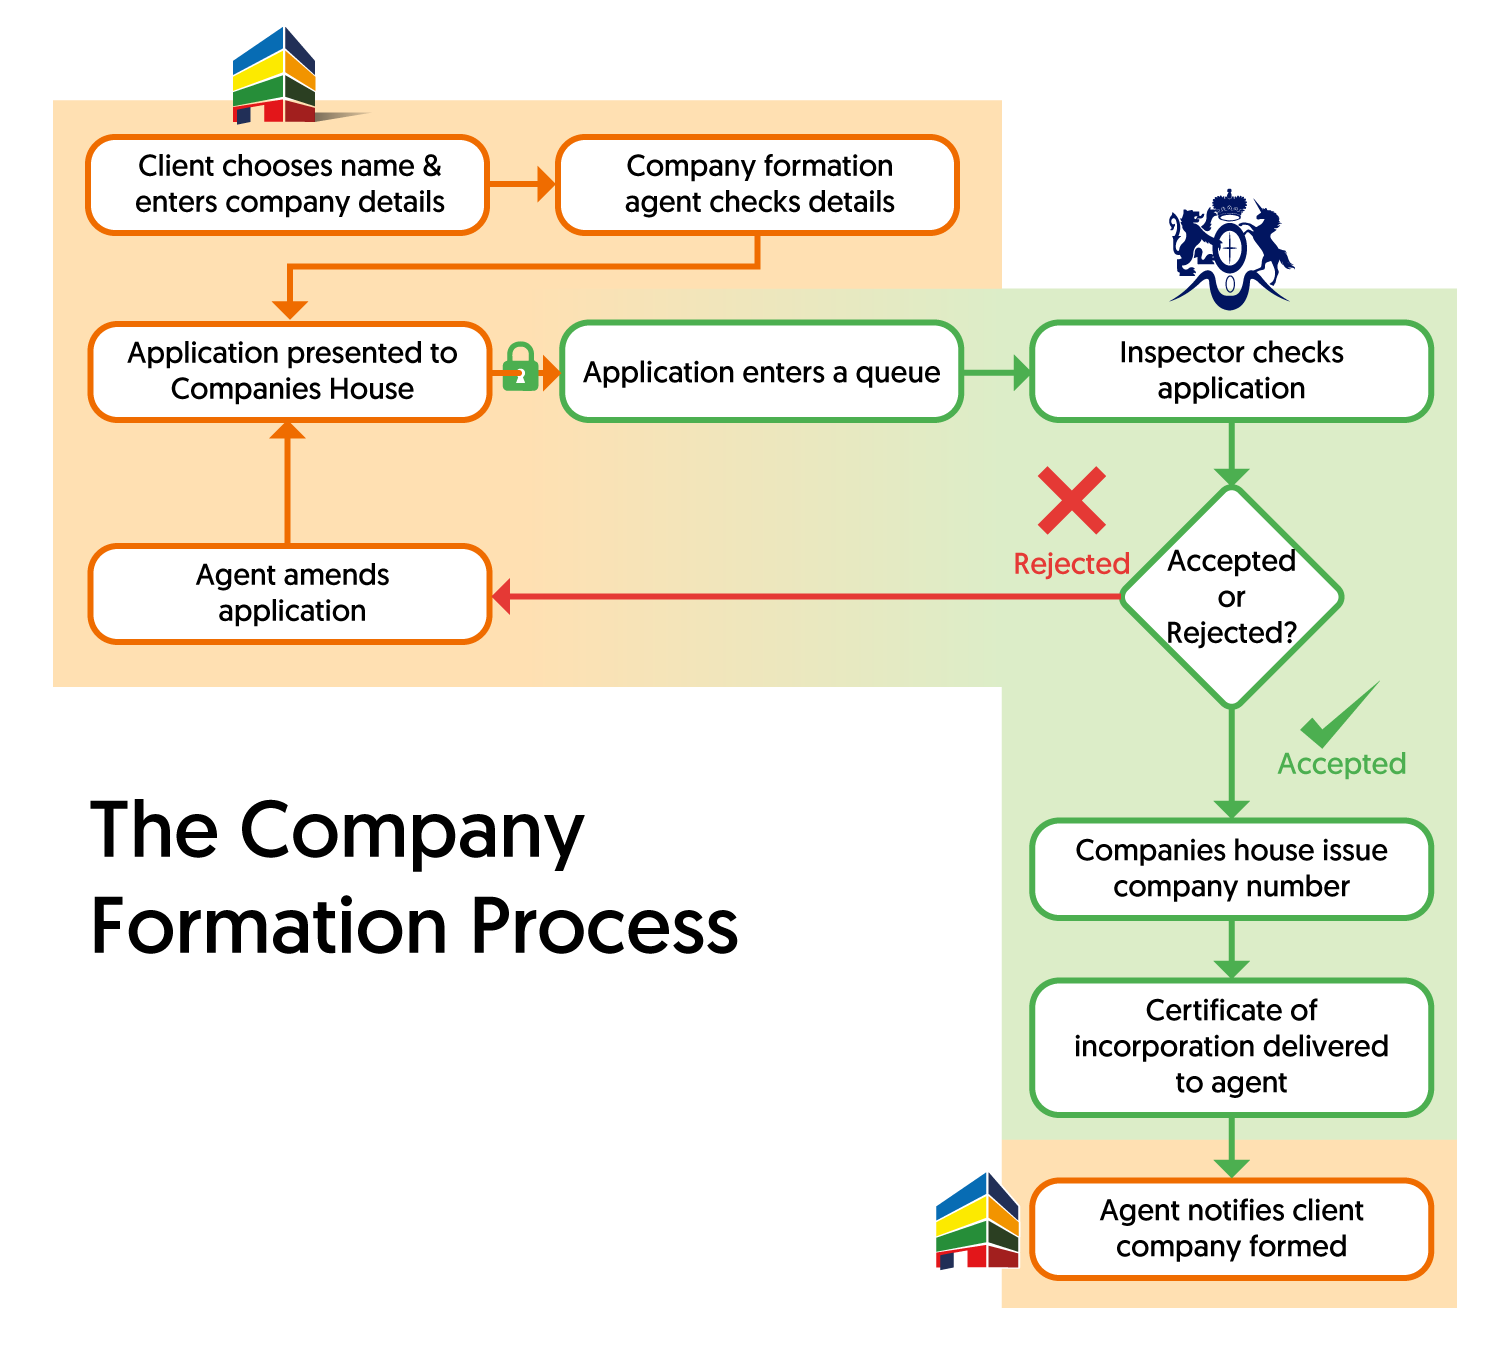 A flow diagram of the company formation process